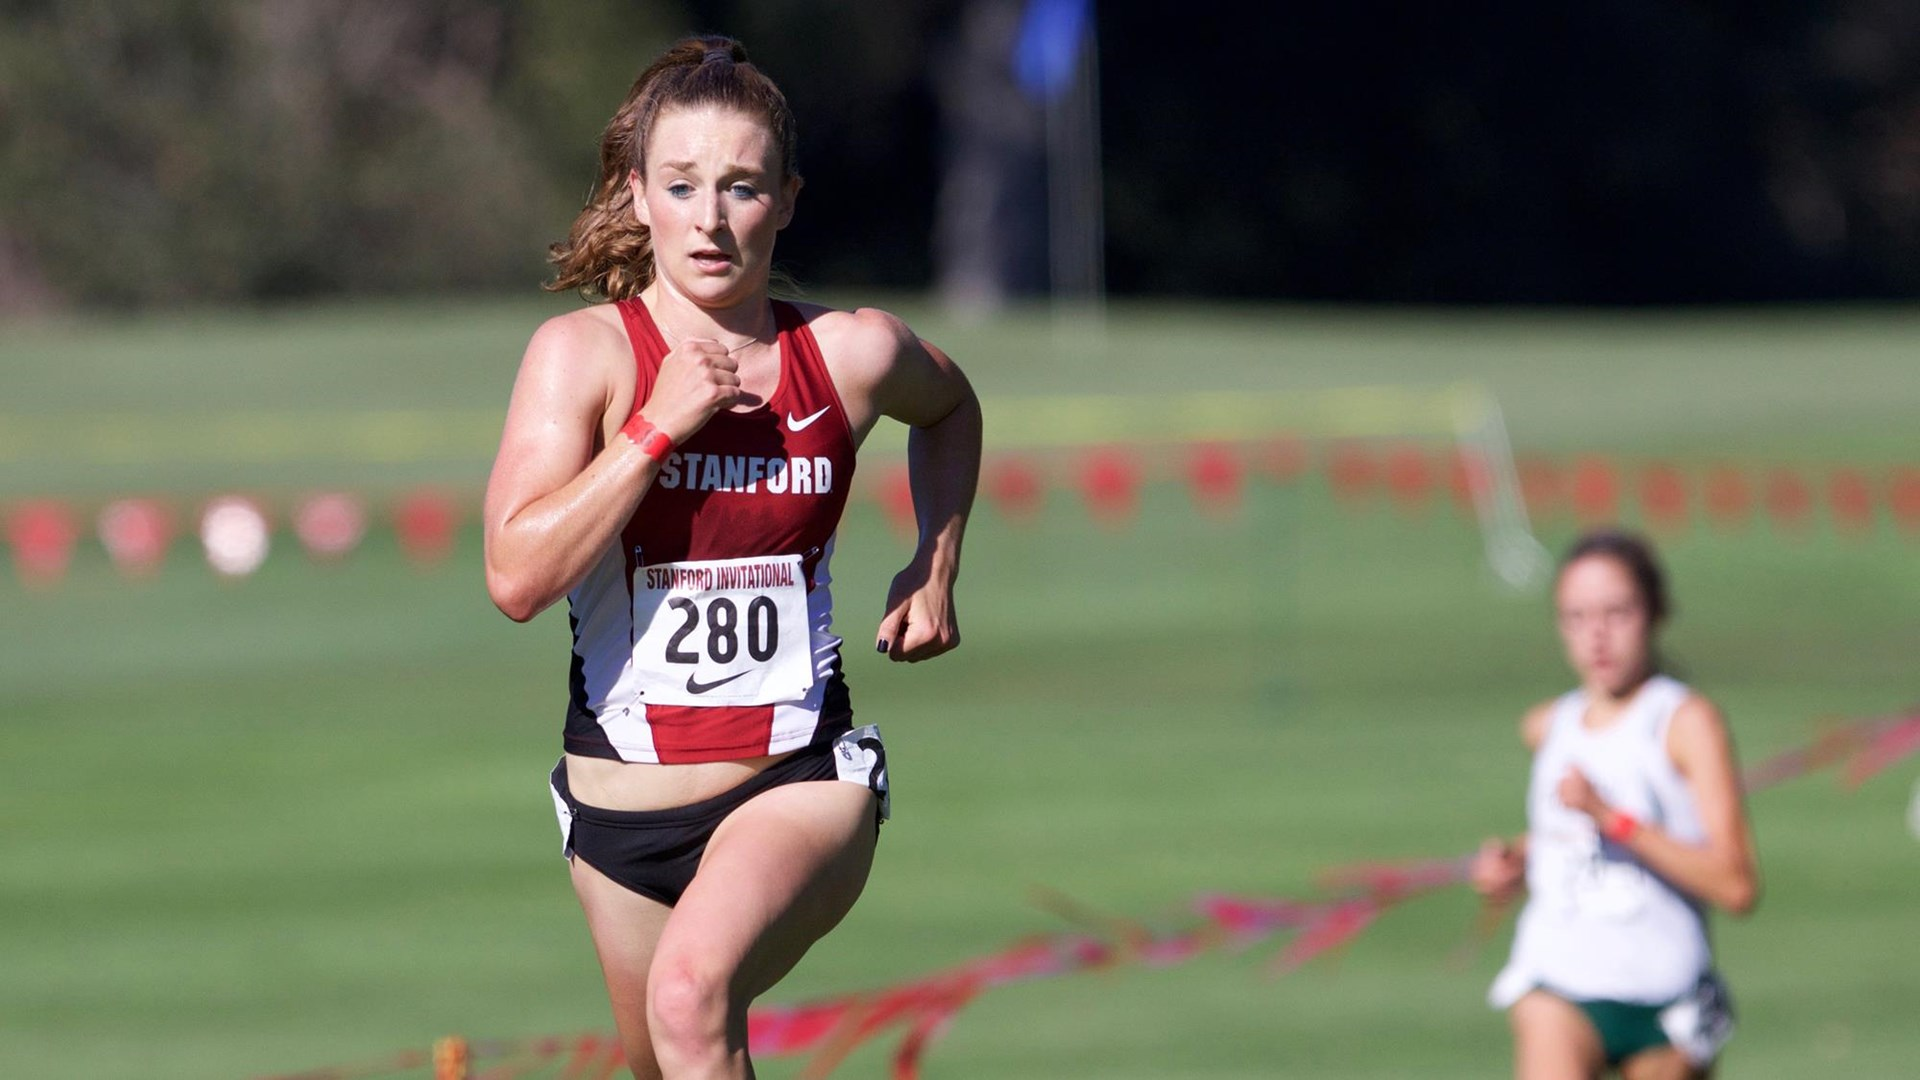 Cranny, Ratcliffe Win Invite